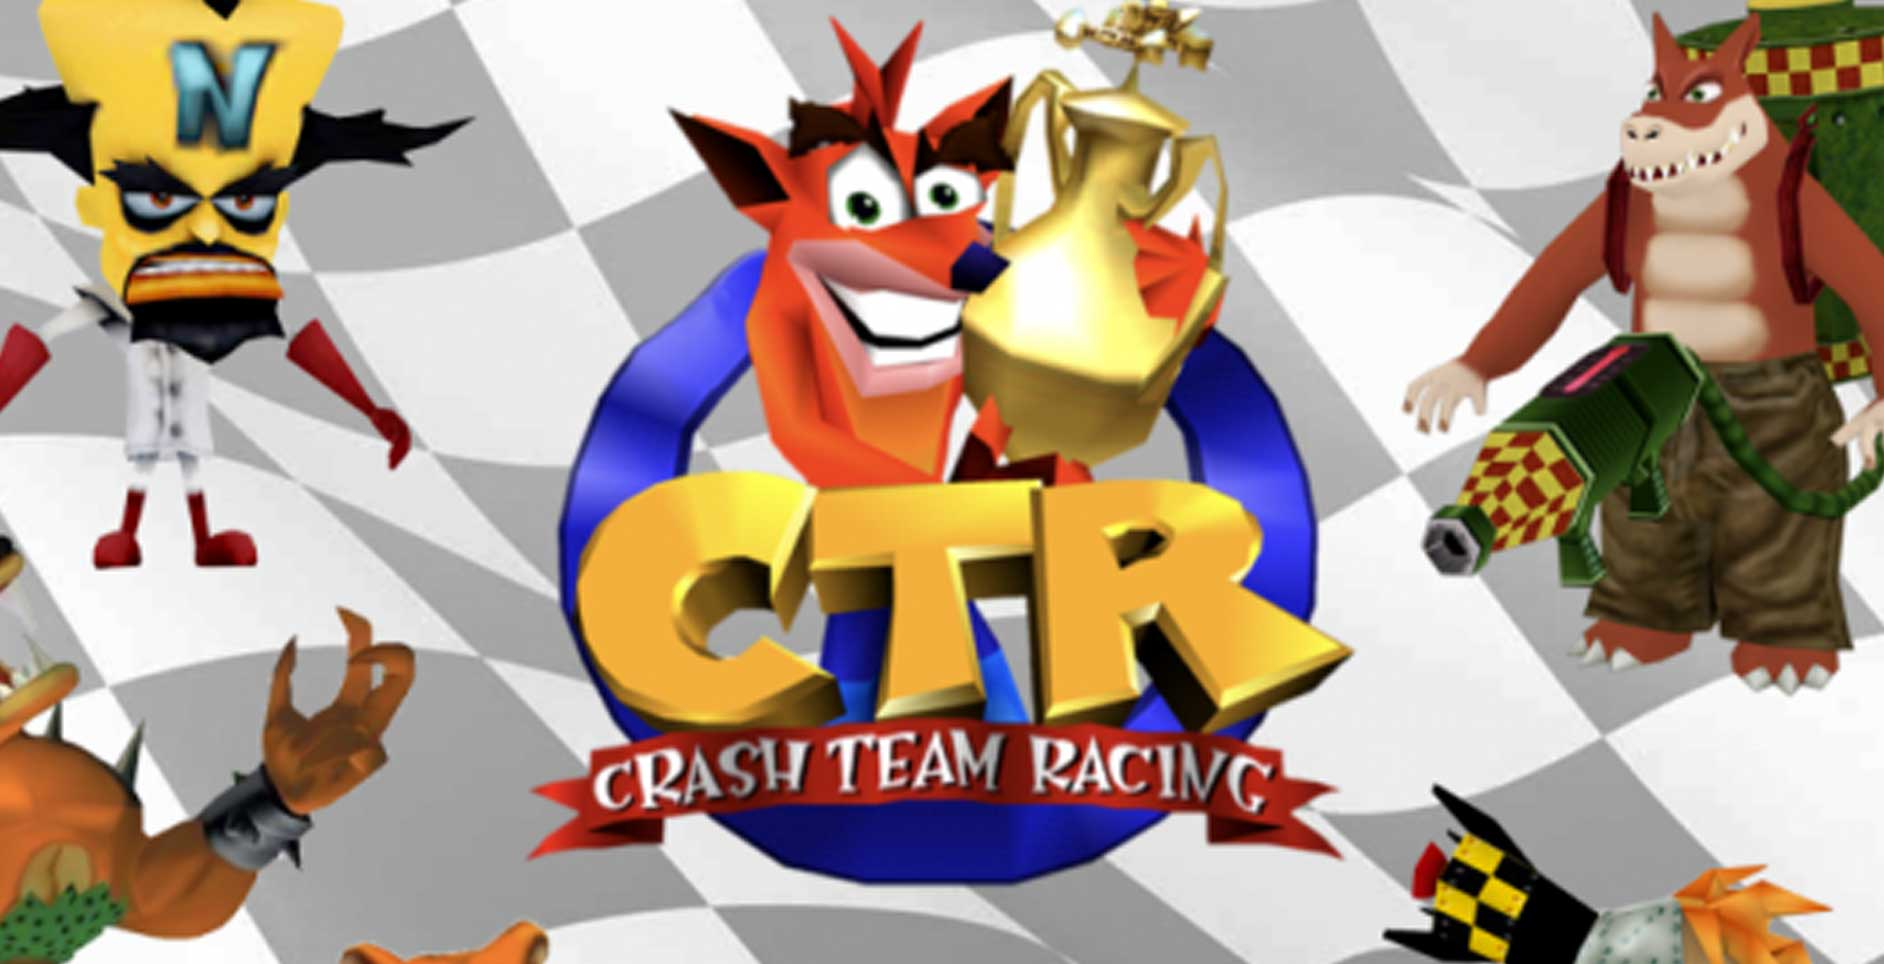 A pair of furry ankles fills up hopes for the Crash Team Racing remaster